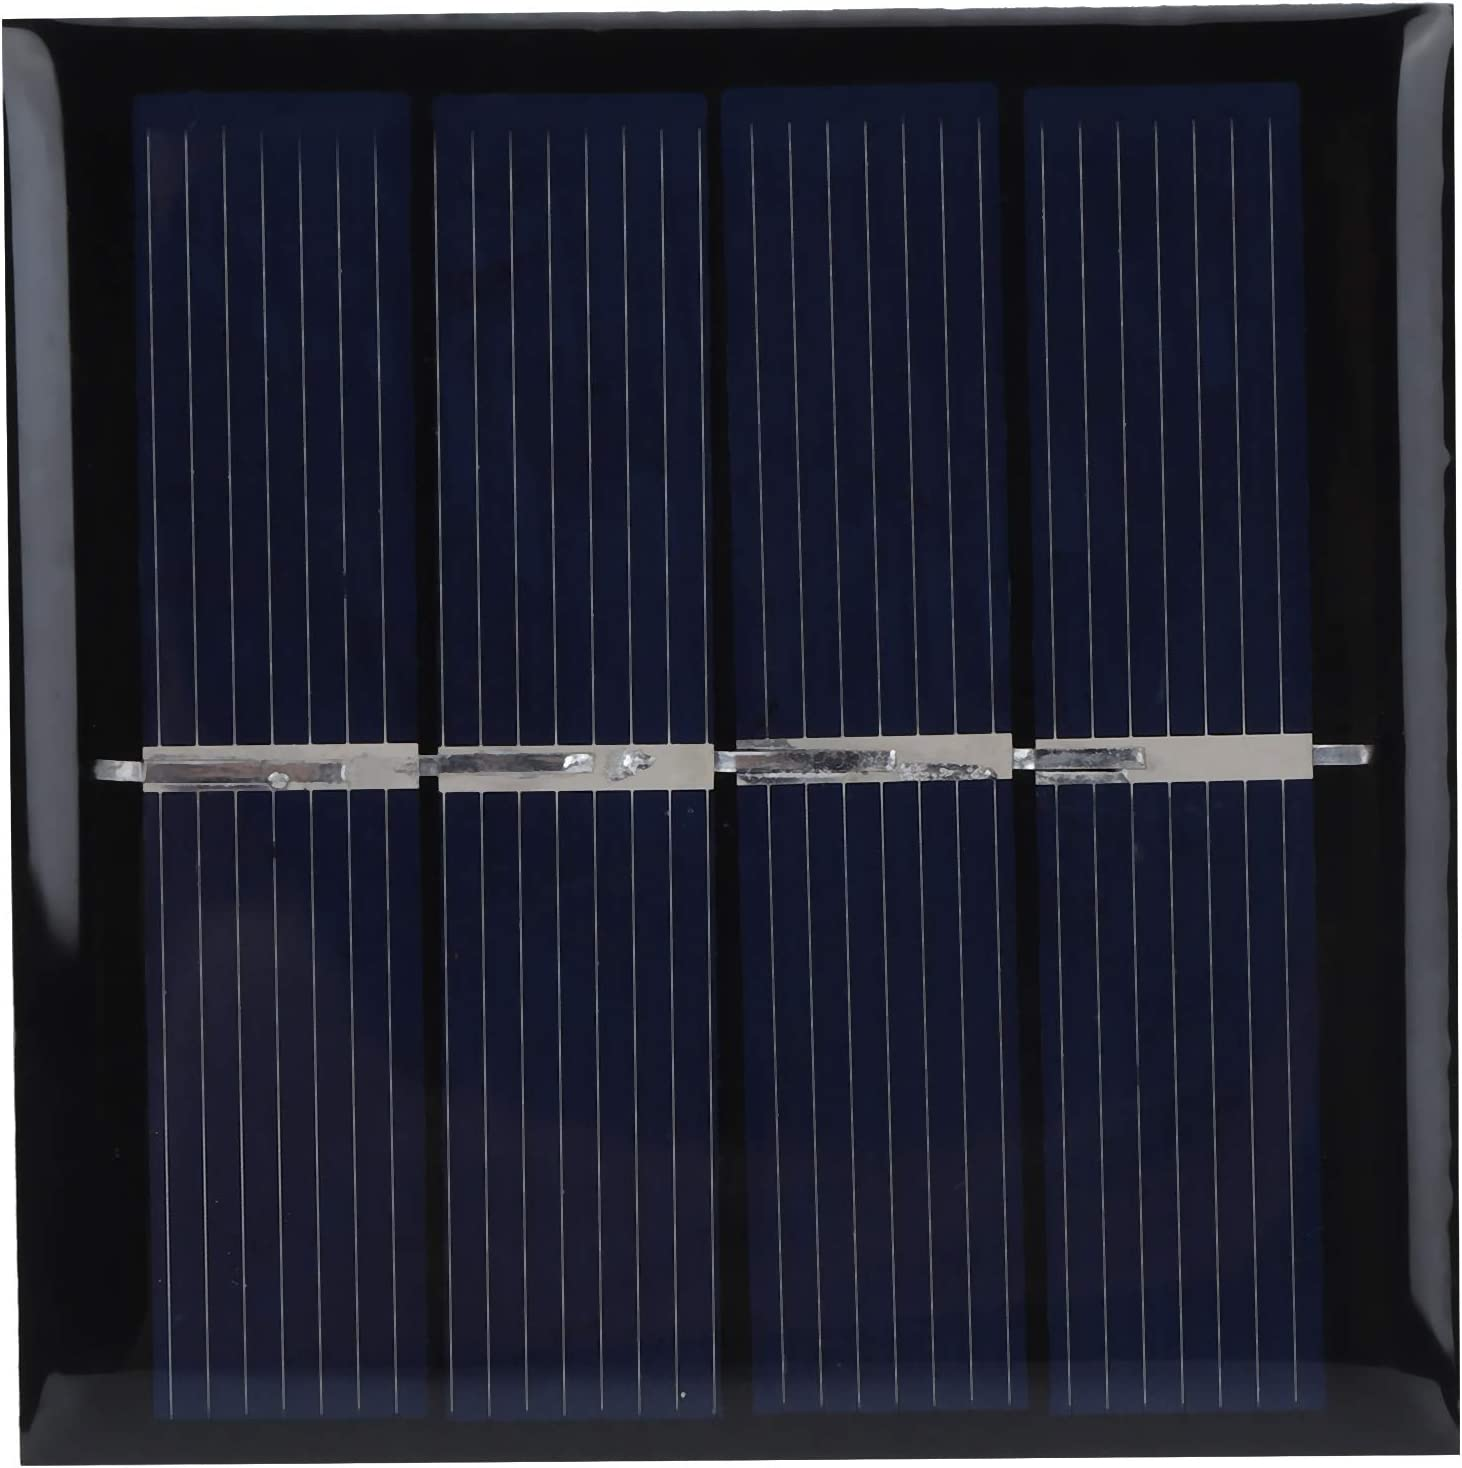 High quality Atyhao Mini Solar Panels Micro Inventory cleanup selling sale 2V Cells 0.45W 58x58mm